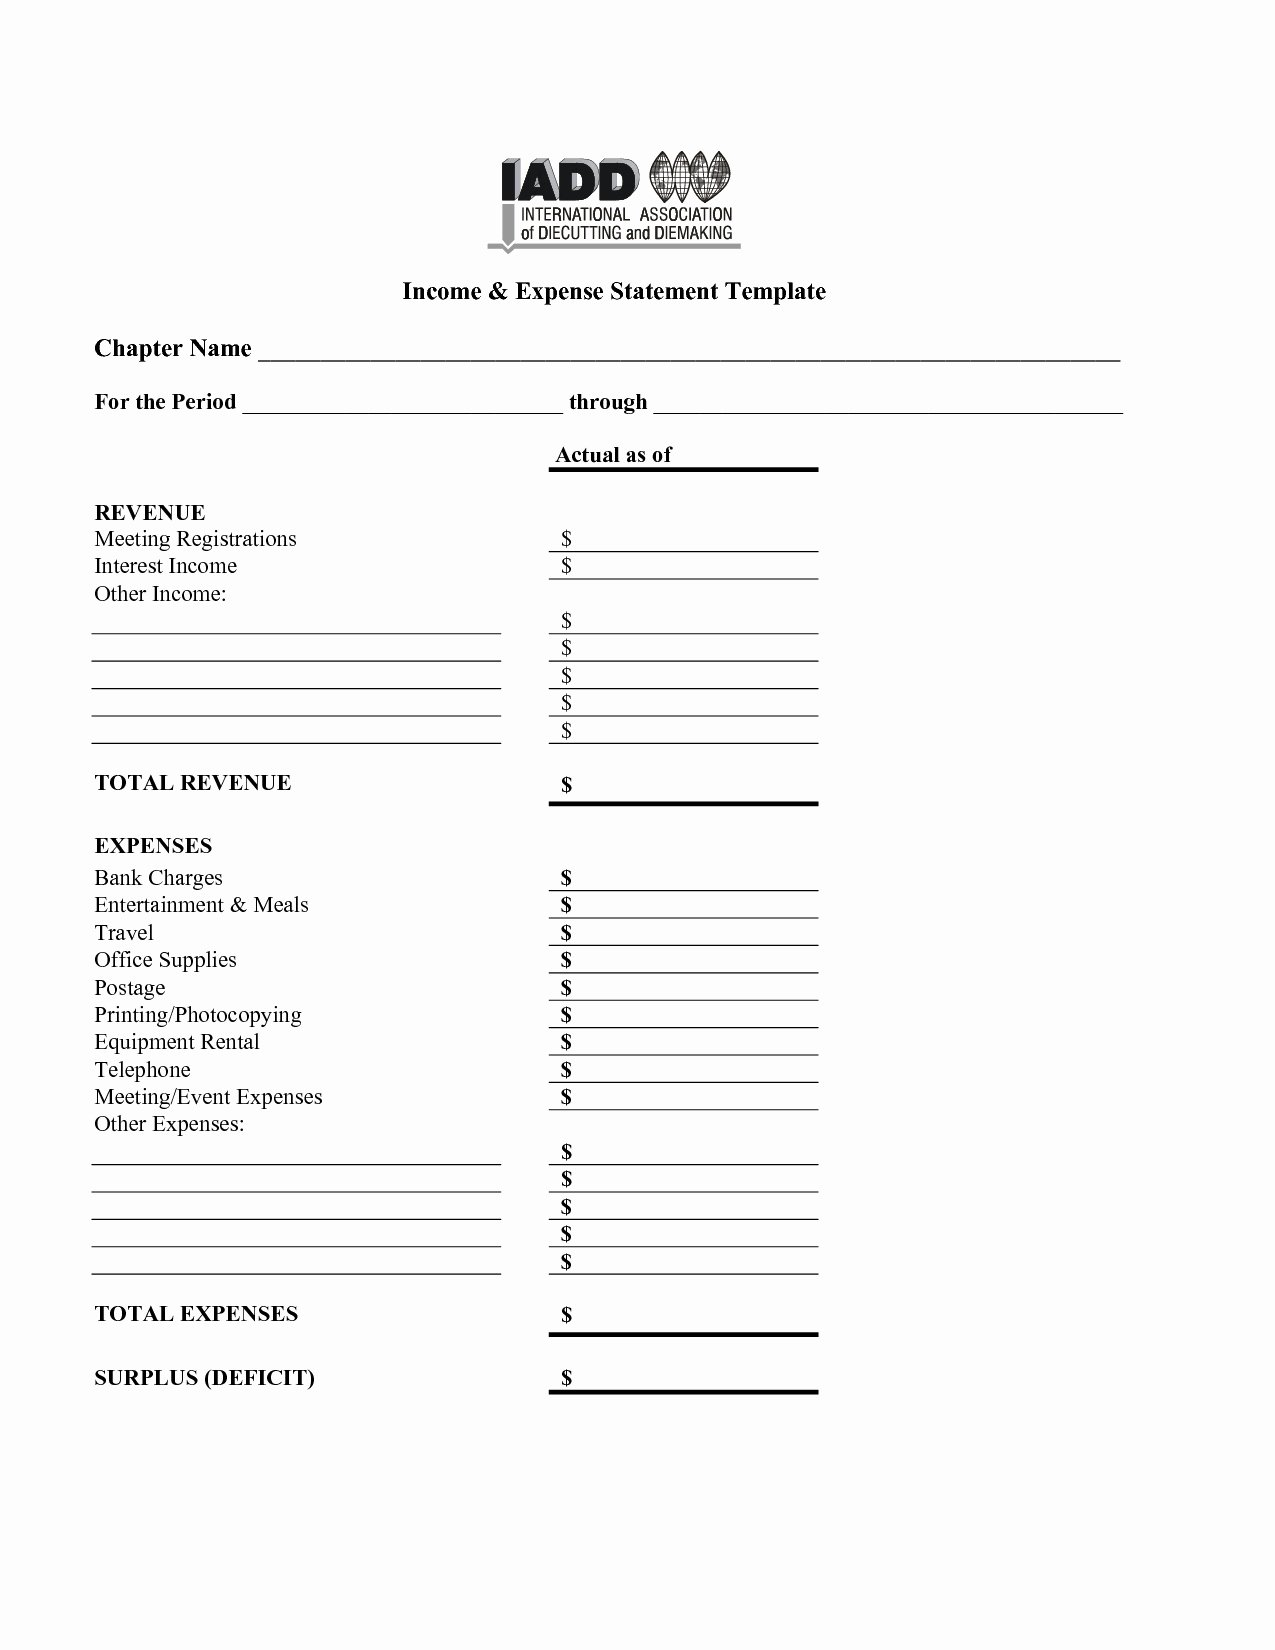 Income and Expense Template Inspirational In E and Expense Statement Template 2018